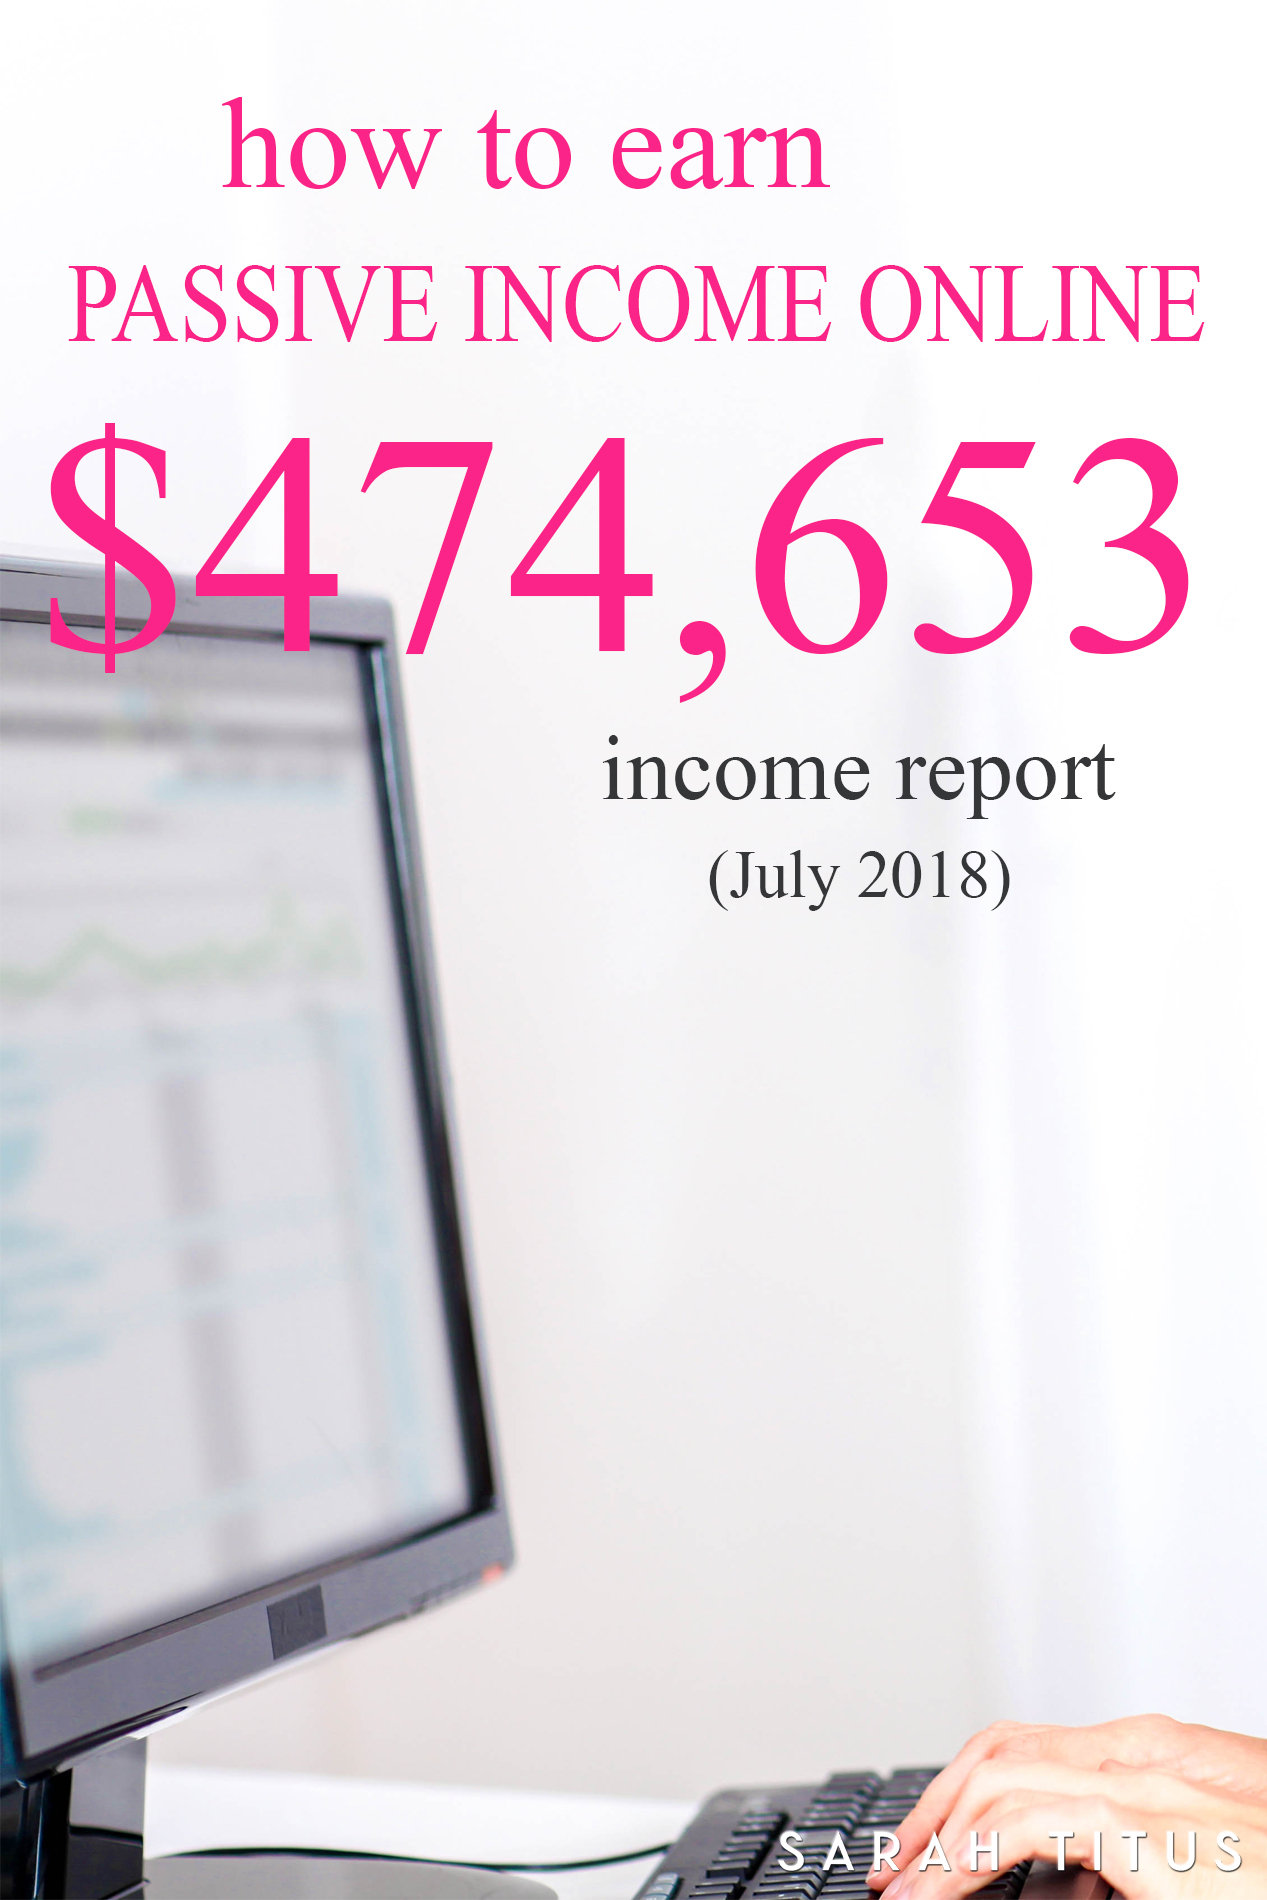 Before I started blogging, I was making $18k/YEAR. I made more than 26x that amount last MONTH ALONE! I'm just as shocked as you are. Opening my own Shopify store has changed my life forever and it can change yours too!